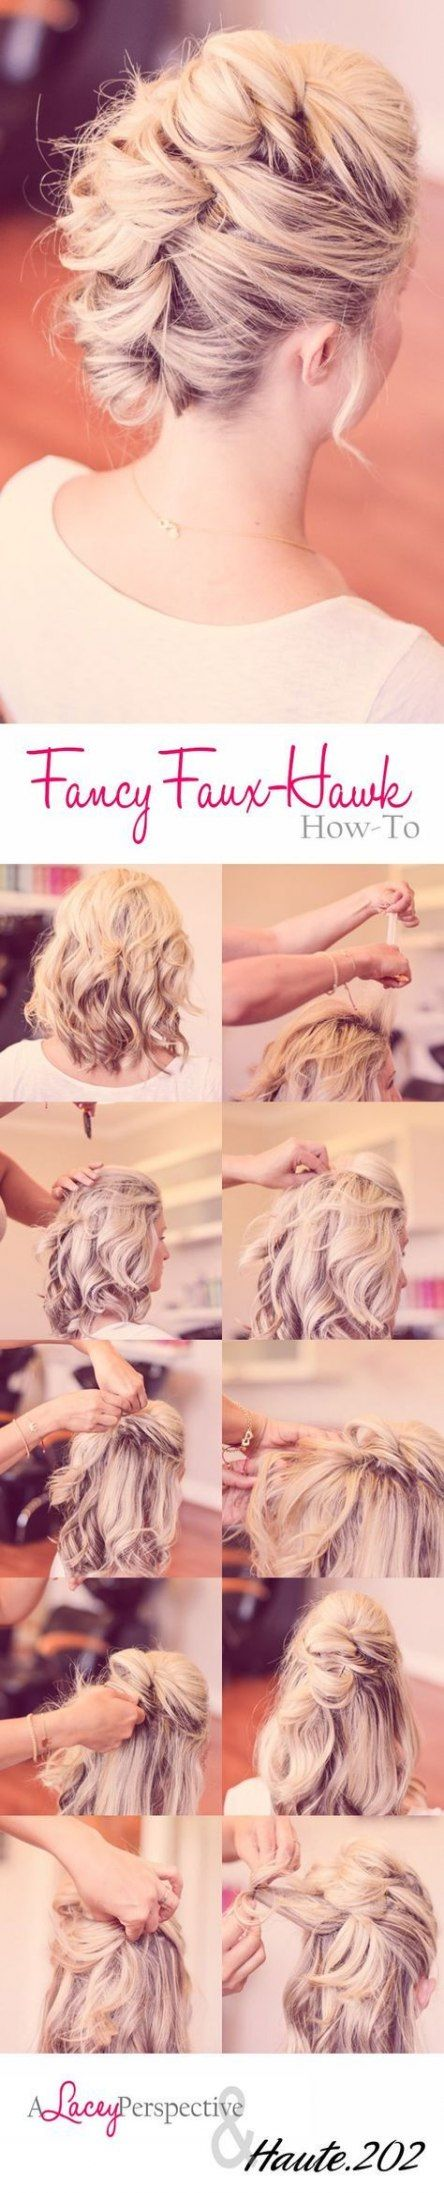 16 Ideas Hairstyles For Medium Length Hair Updo Colour For 2019